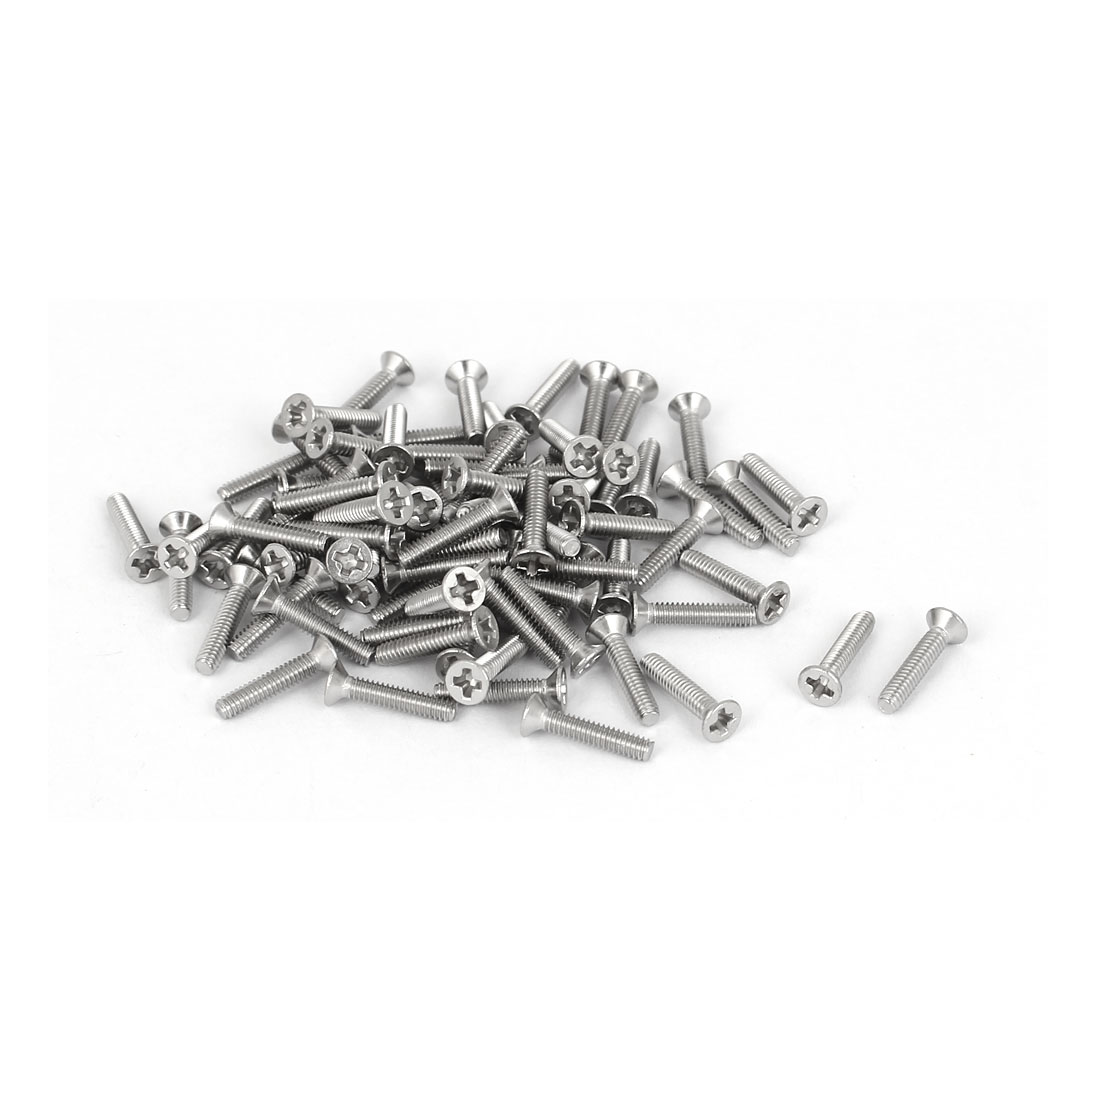 80 Pcs M2x10mm 316 Stainless Steel Flat Head Phillips Machine Screws Fasteners